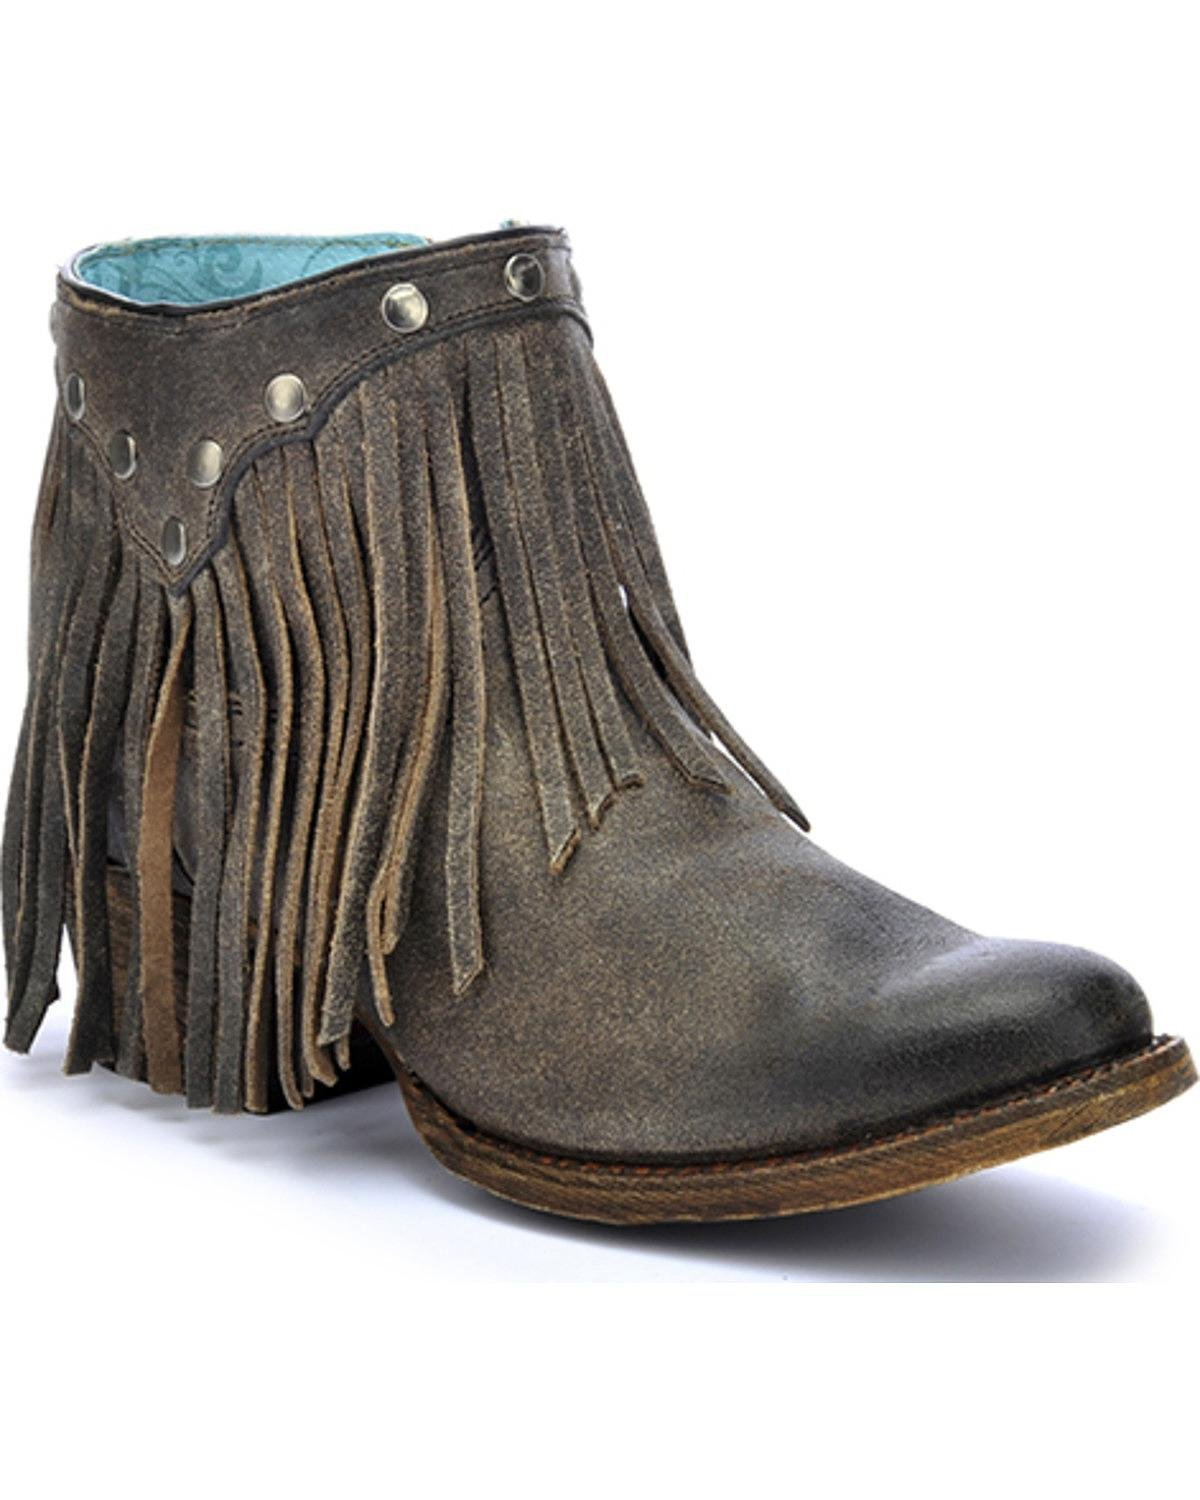 CORRAL Women's Fringe Ankle Boot Round Toe - A3136 B01J7XMD00 8 B(M) US|Grey